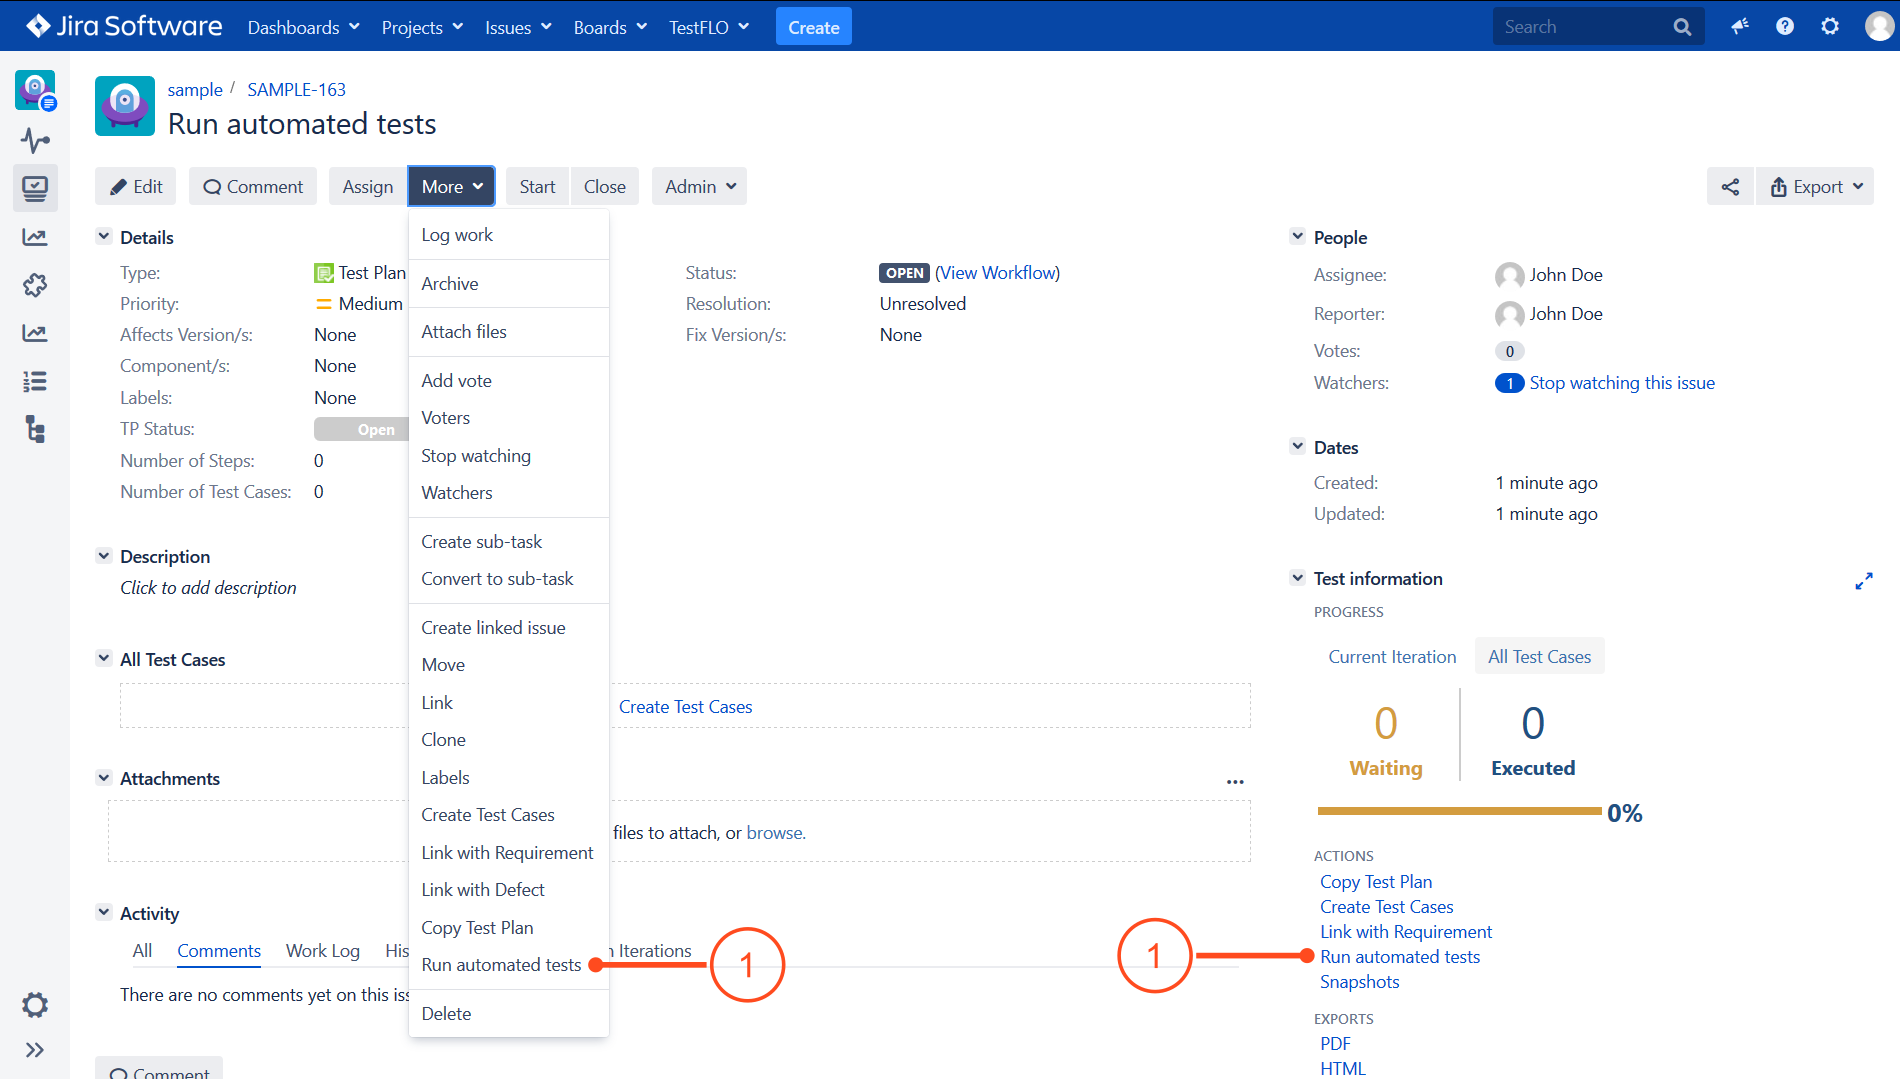 Run automated tests operation in Test Plan in TestFLO - Test Management in Jira